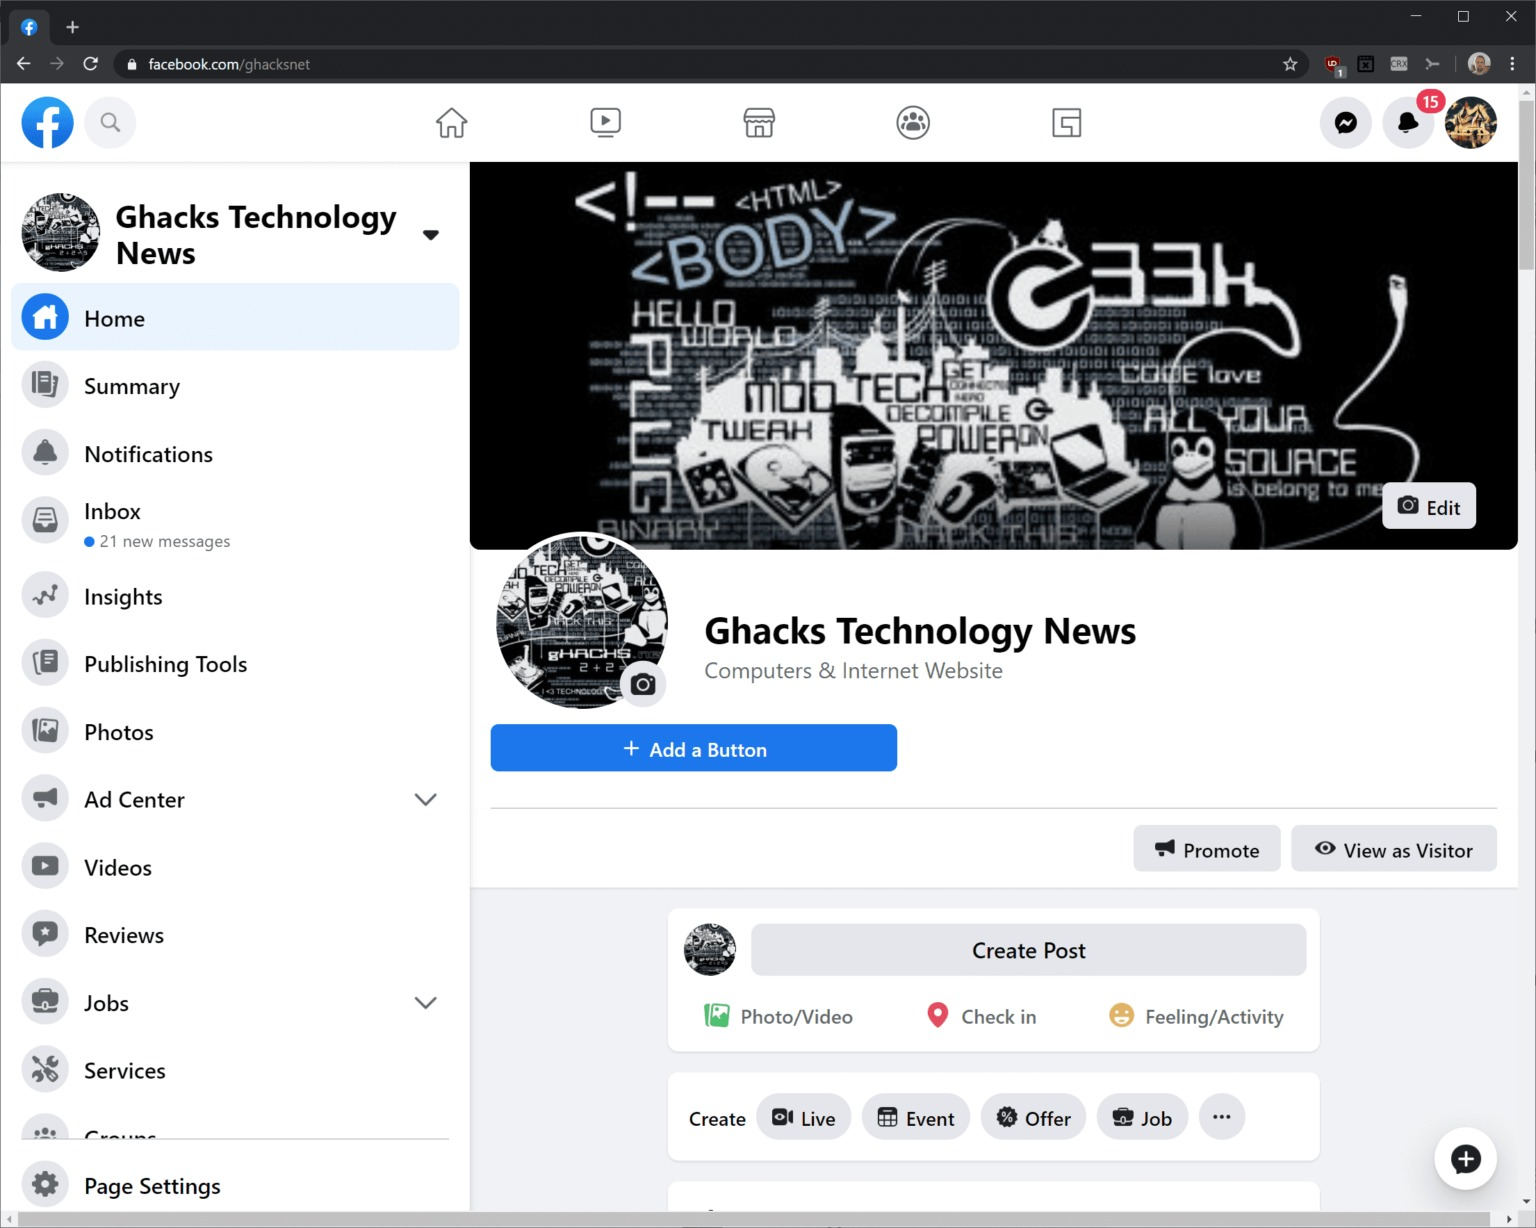 Kritiek op nieuwe Facebook interface - Online Marketing Nieuws